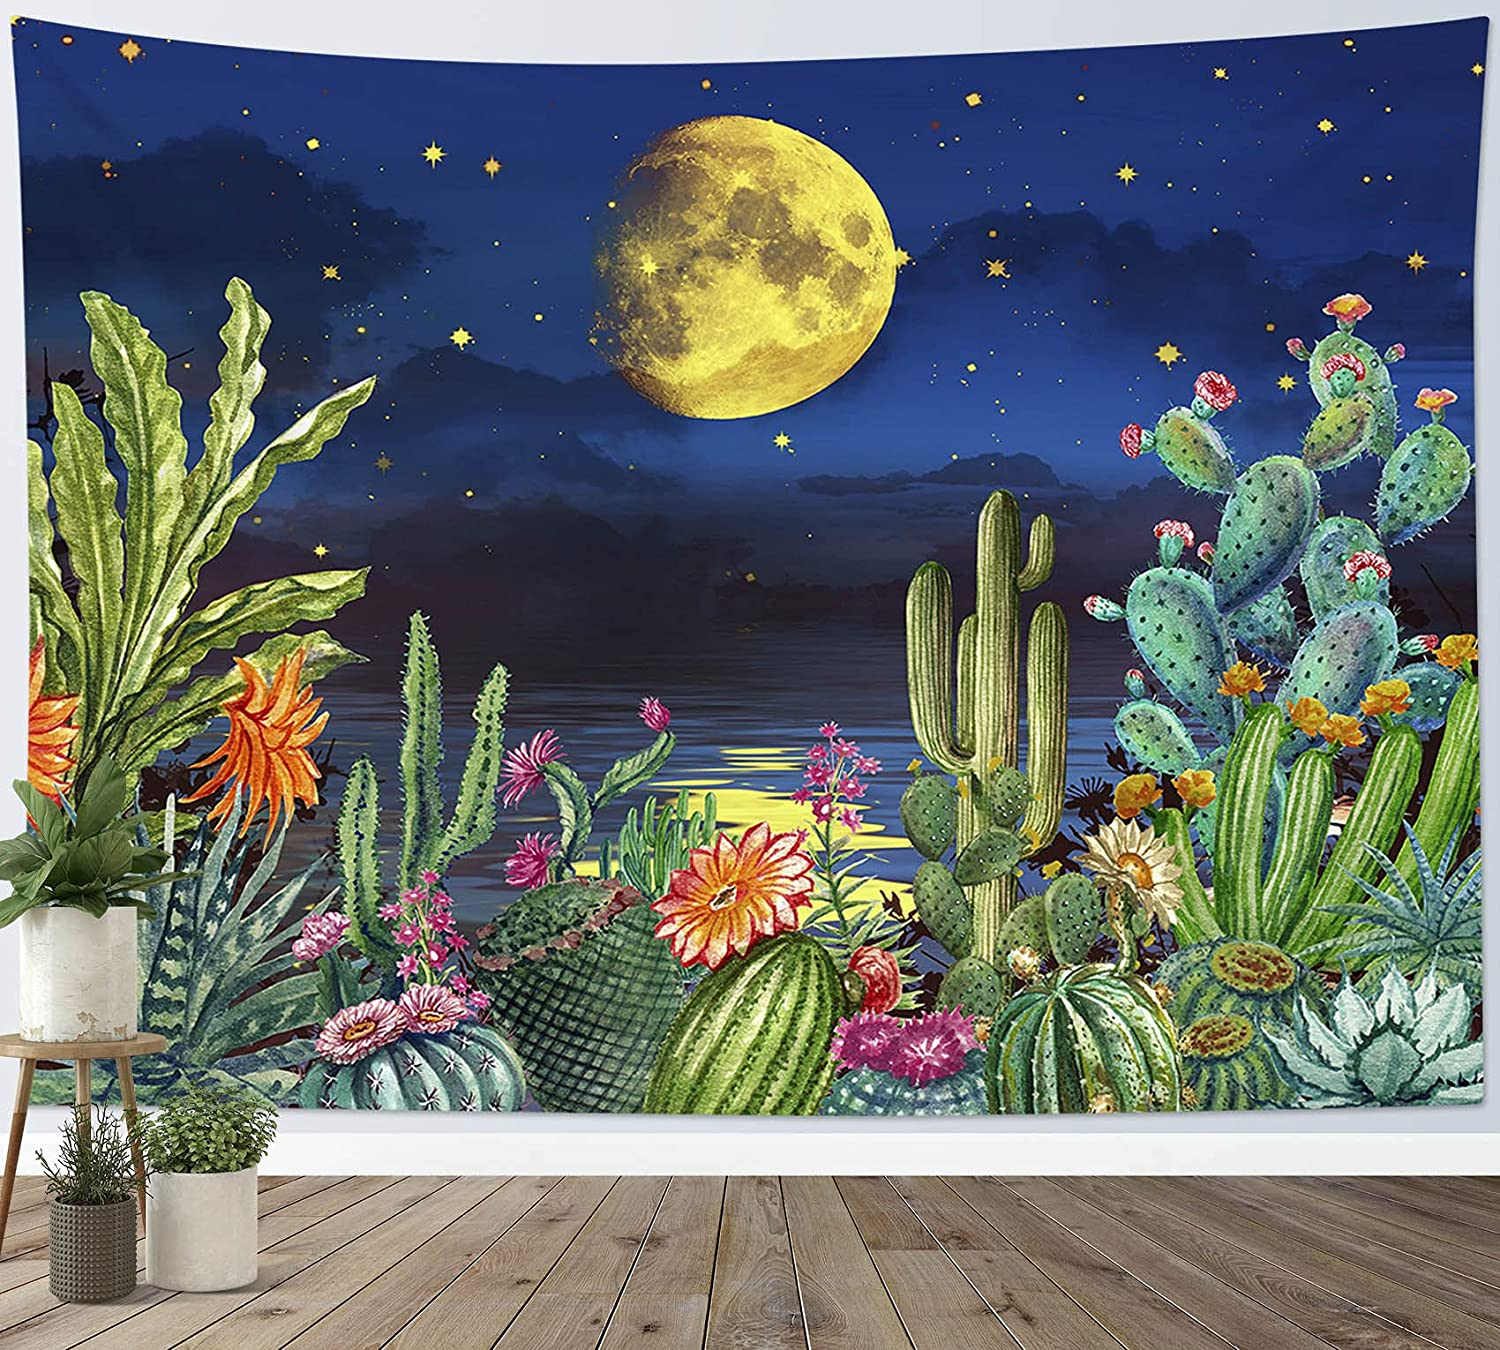 LB Small Full Moon Over Ocean Tapestry Cactus Wall Tapestry Fantasy Tropical Succulent Plant Tapestries Galaxy Sky Stars Tapestry Wall Hanging for Bedroom Living Room Dorm Home Decor, 60 x 40 Inches